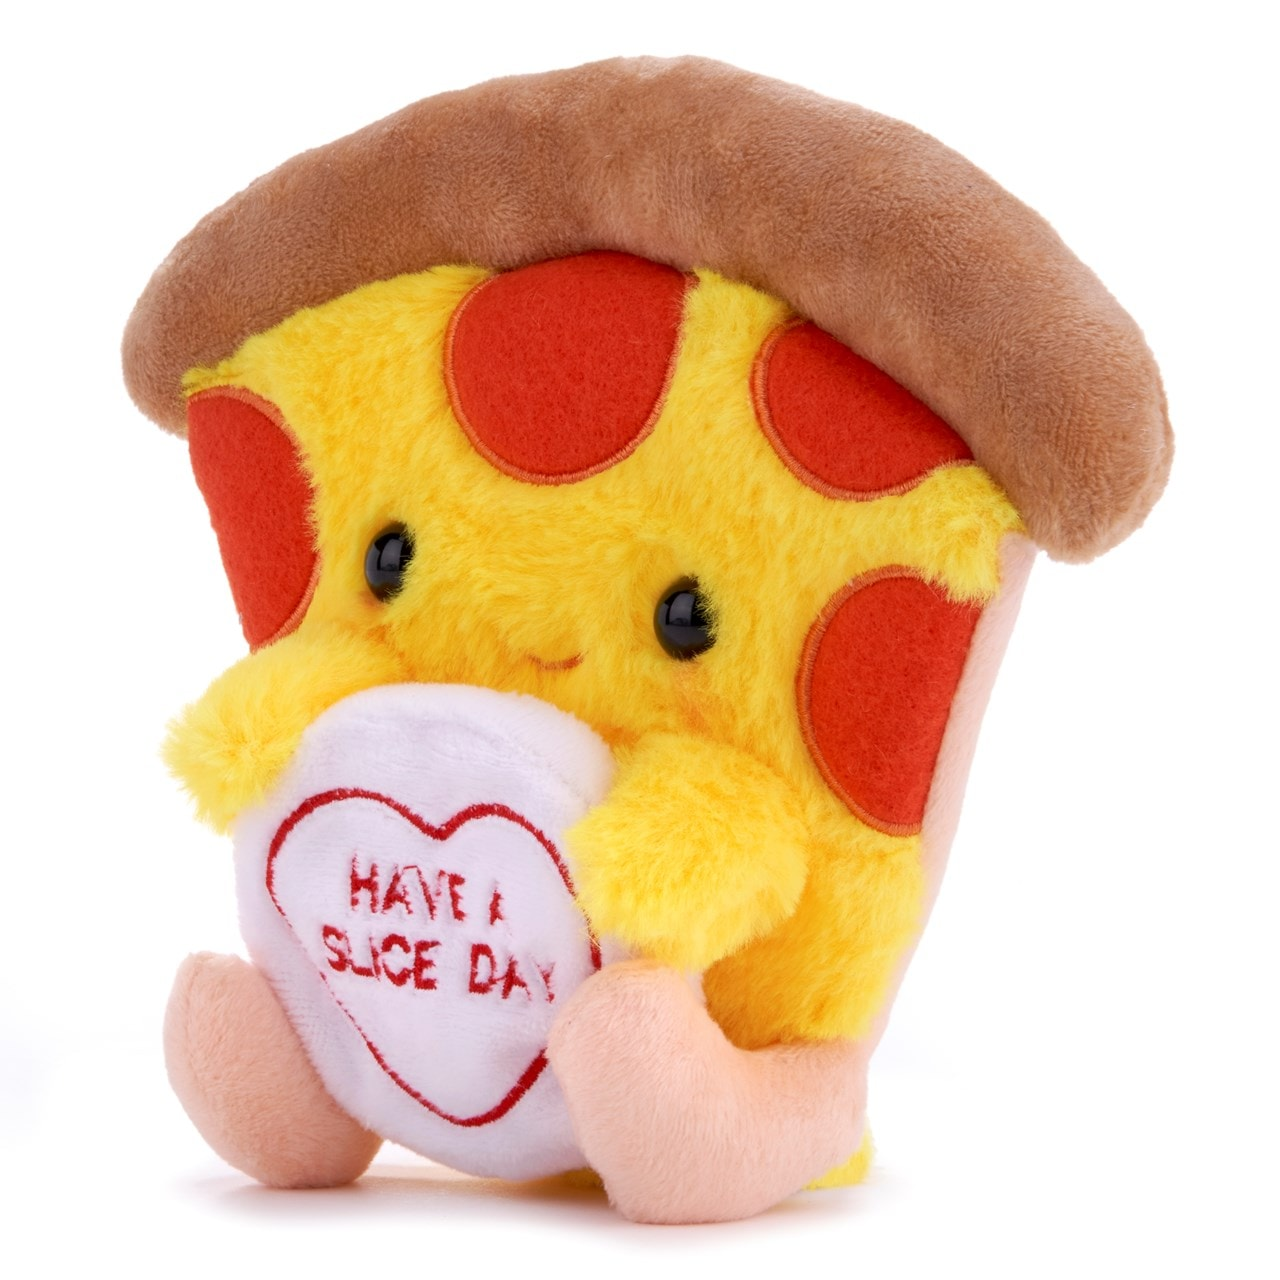 Patrick the Pizza: Swizzles Love Hearts Collection Plush Toy - 2